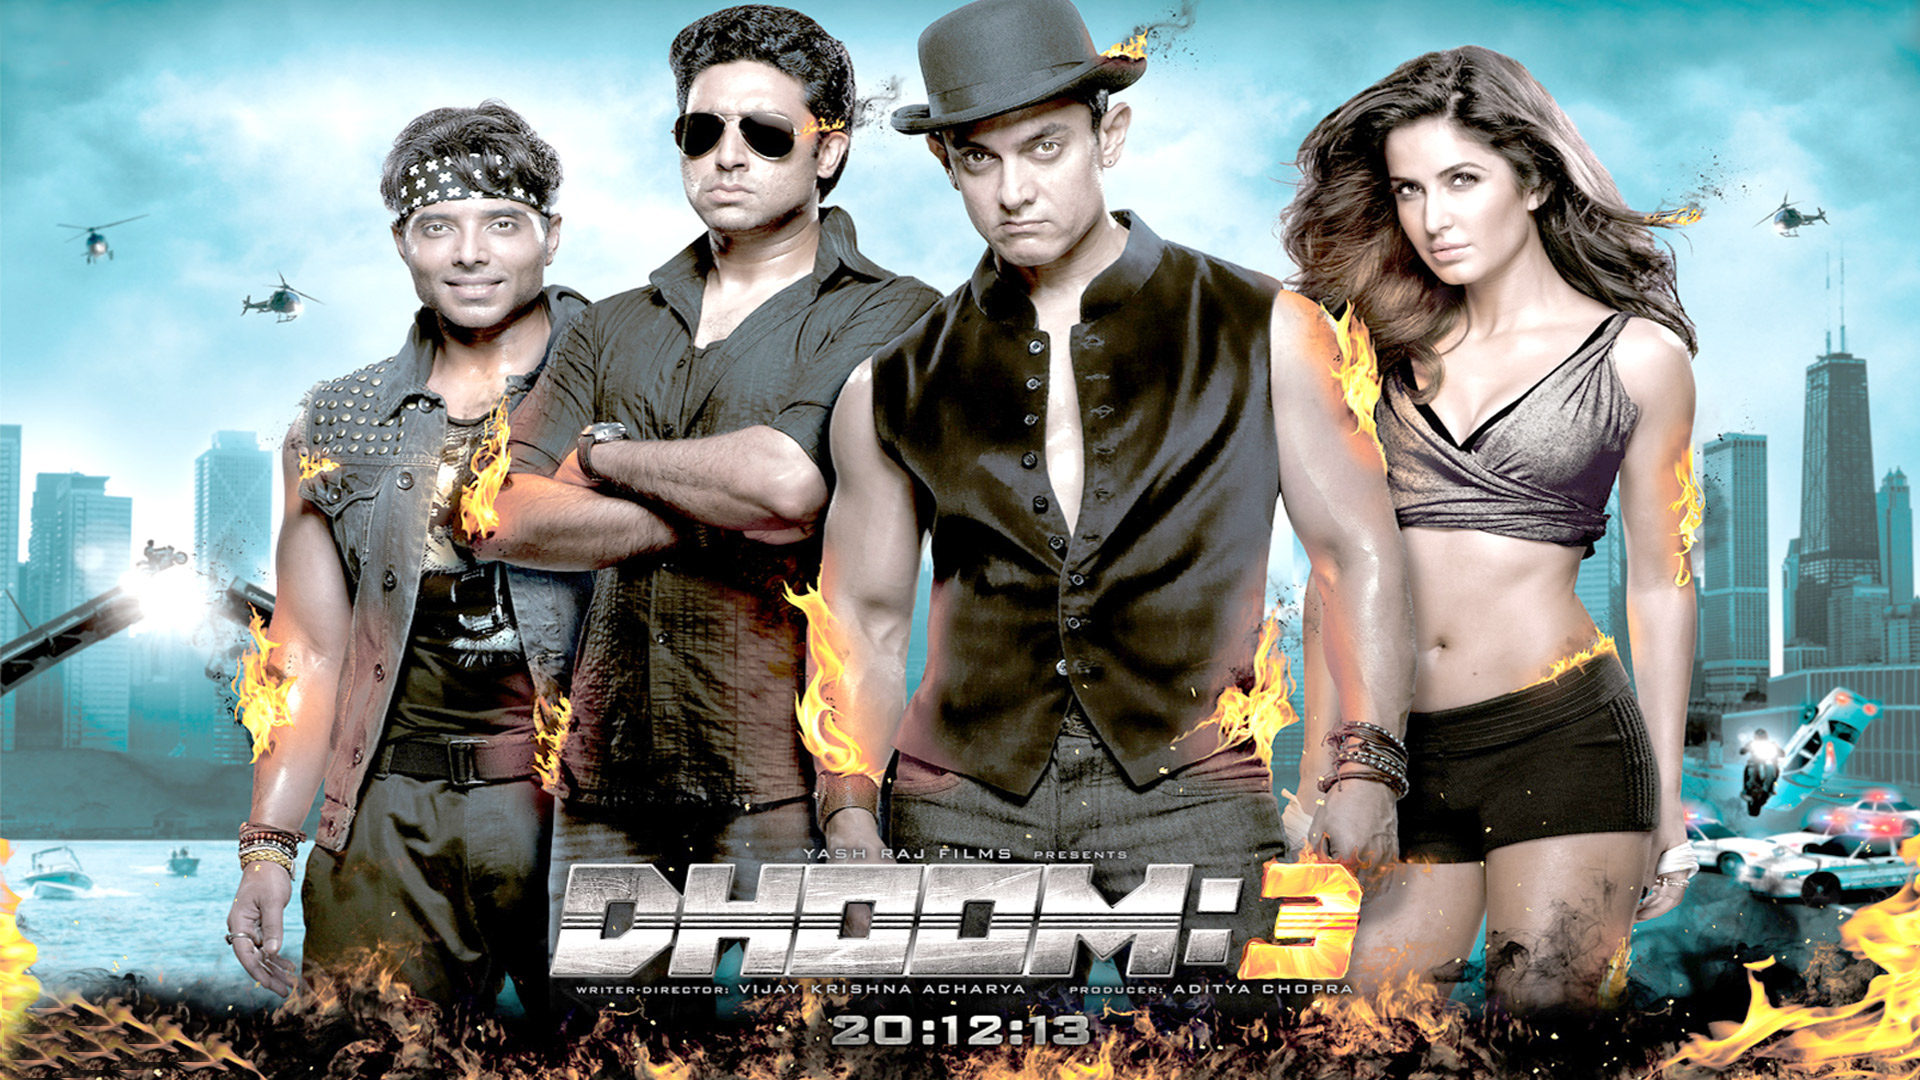 Photo Credit http://www.masala.com/dhoom3-movie-review-149920.html